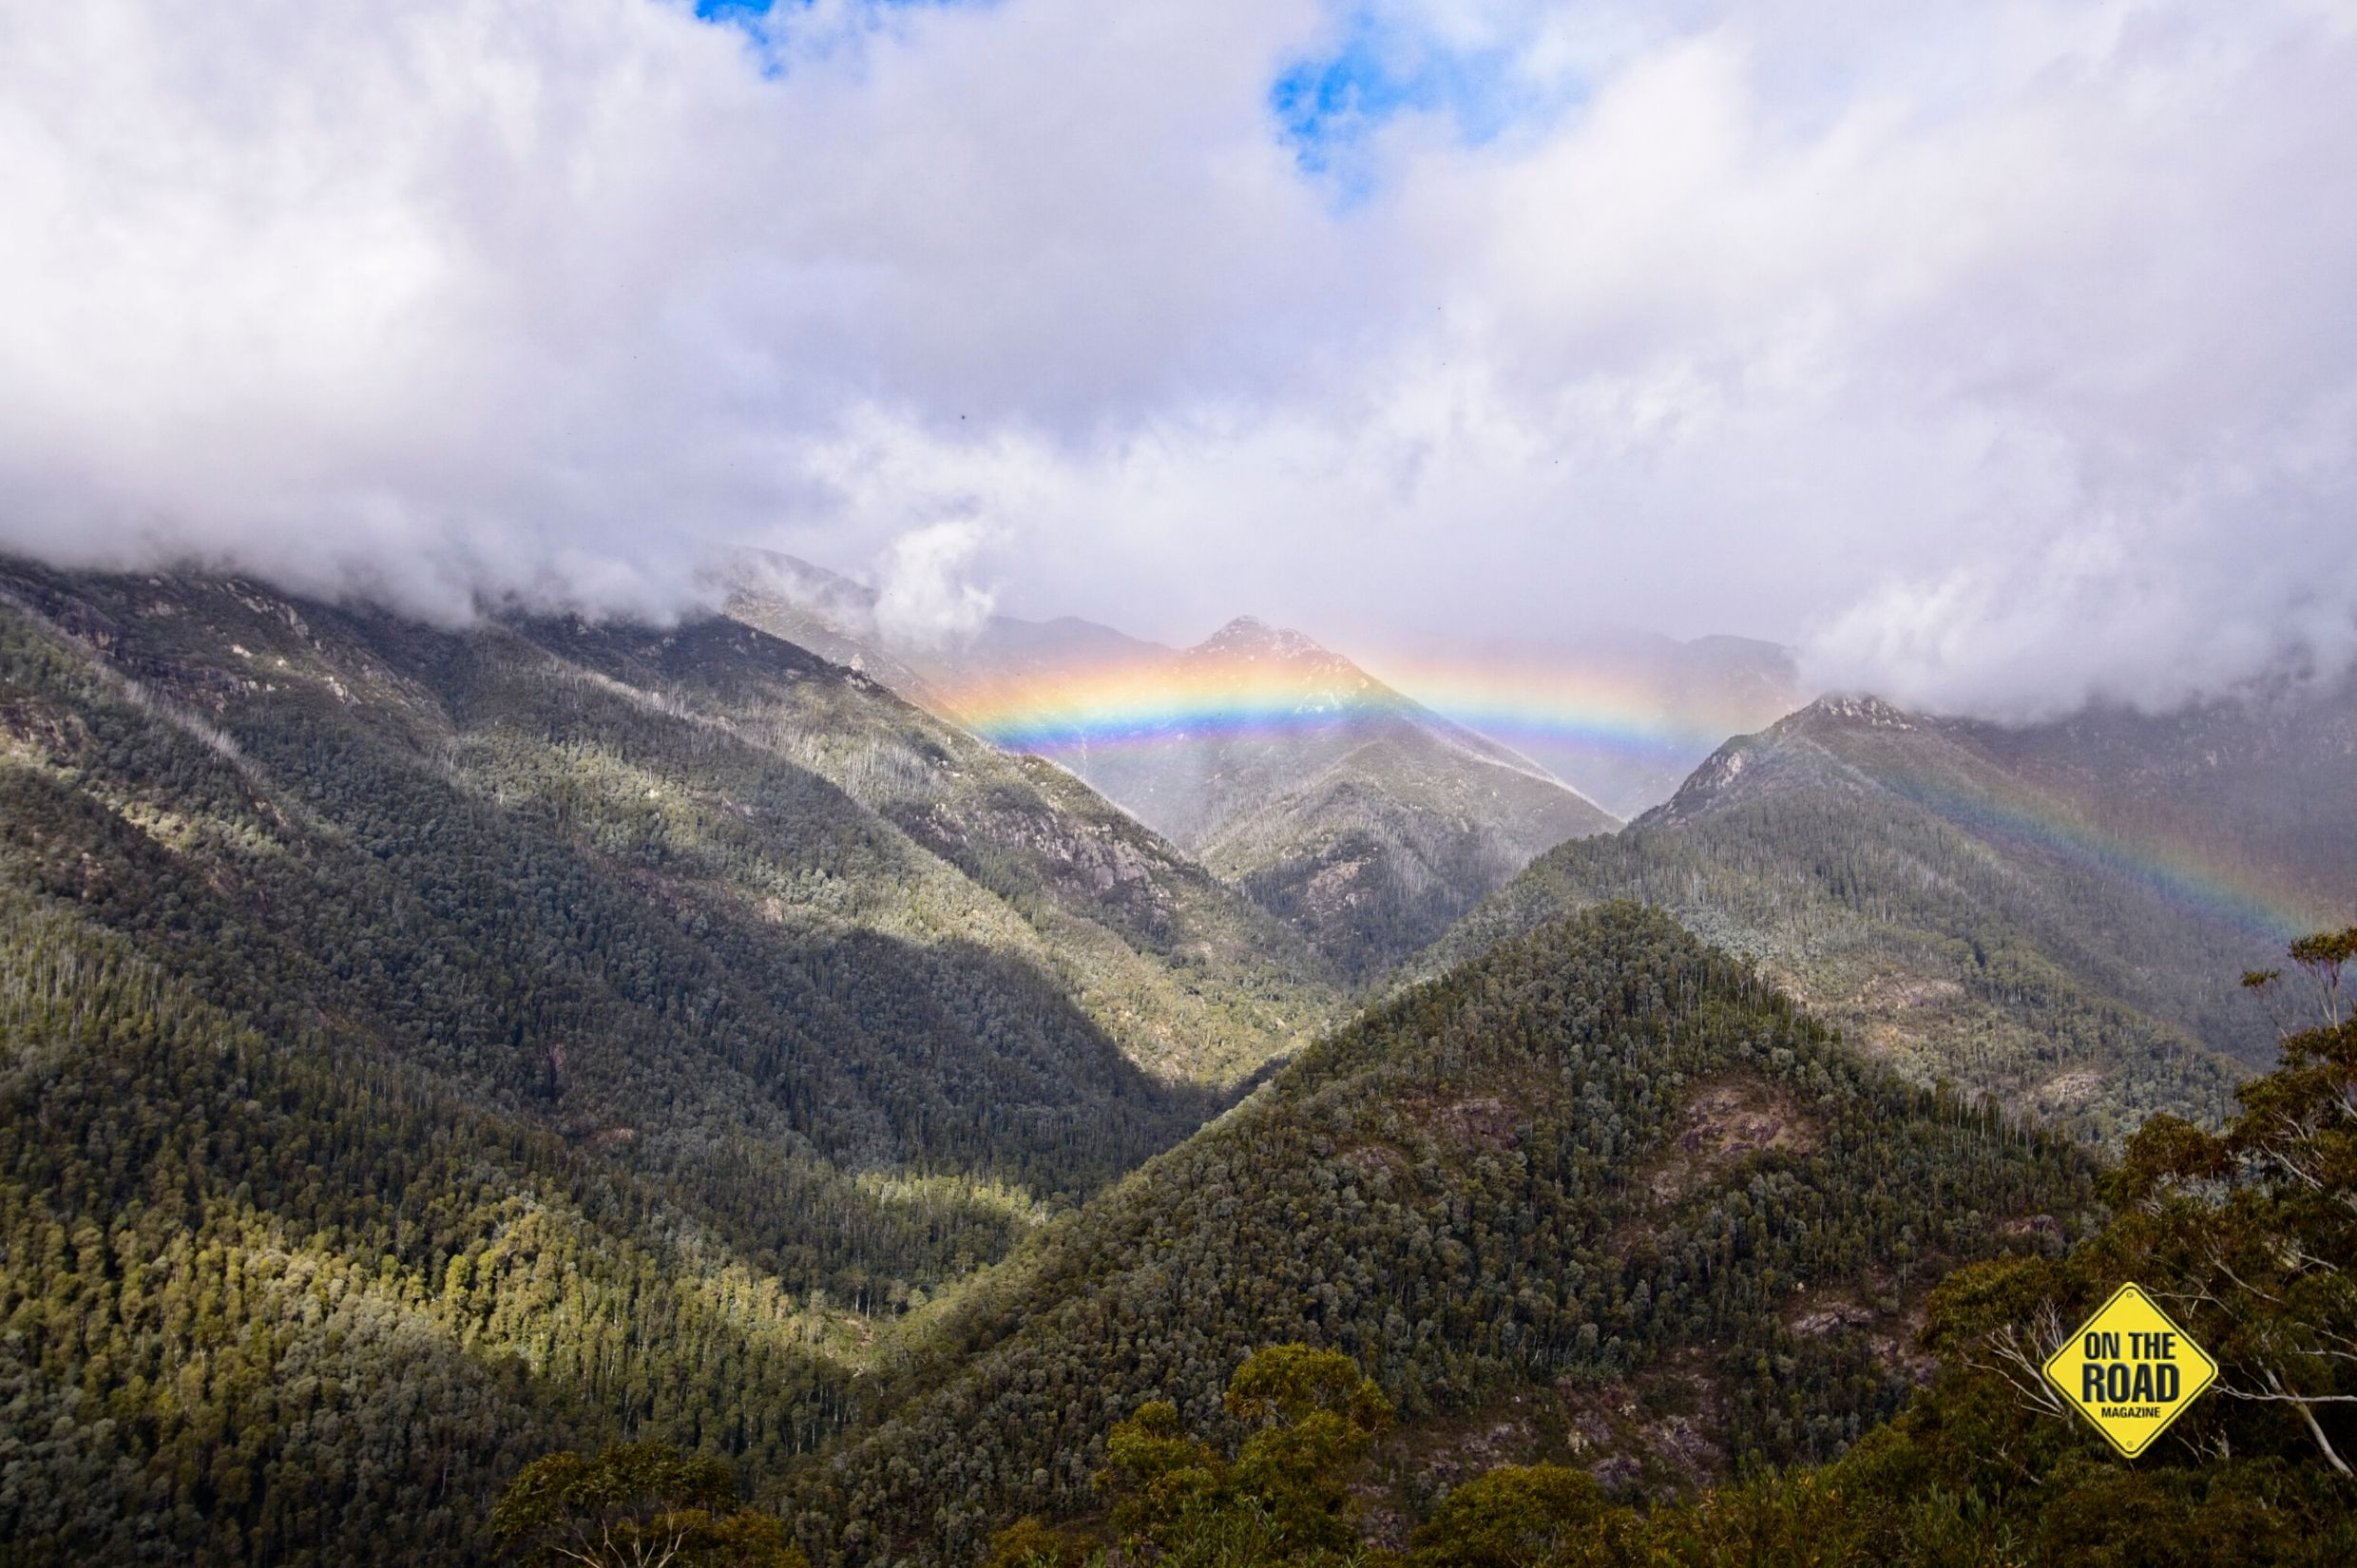 Olsens Lookout on the way to Geehi Dam shrouded with mist and complete with rainbow